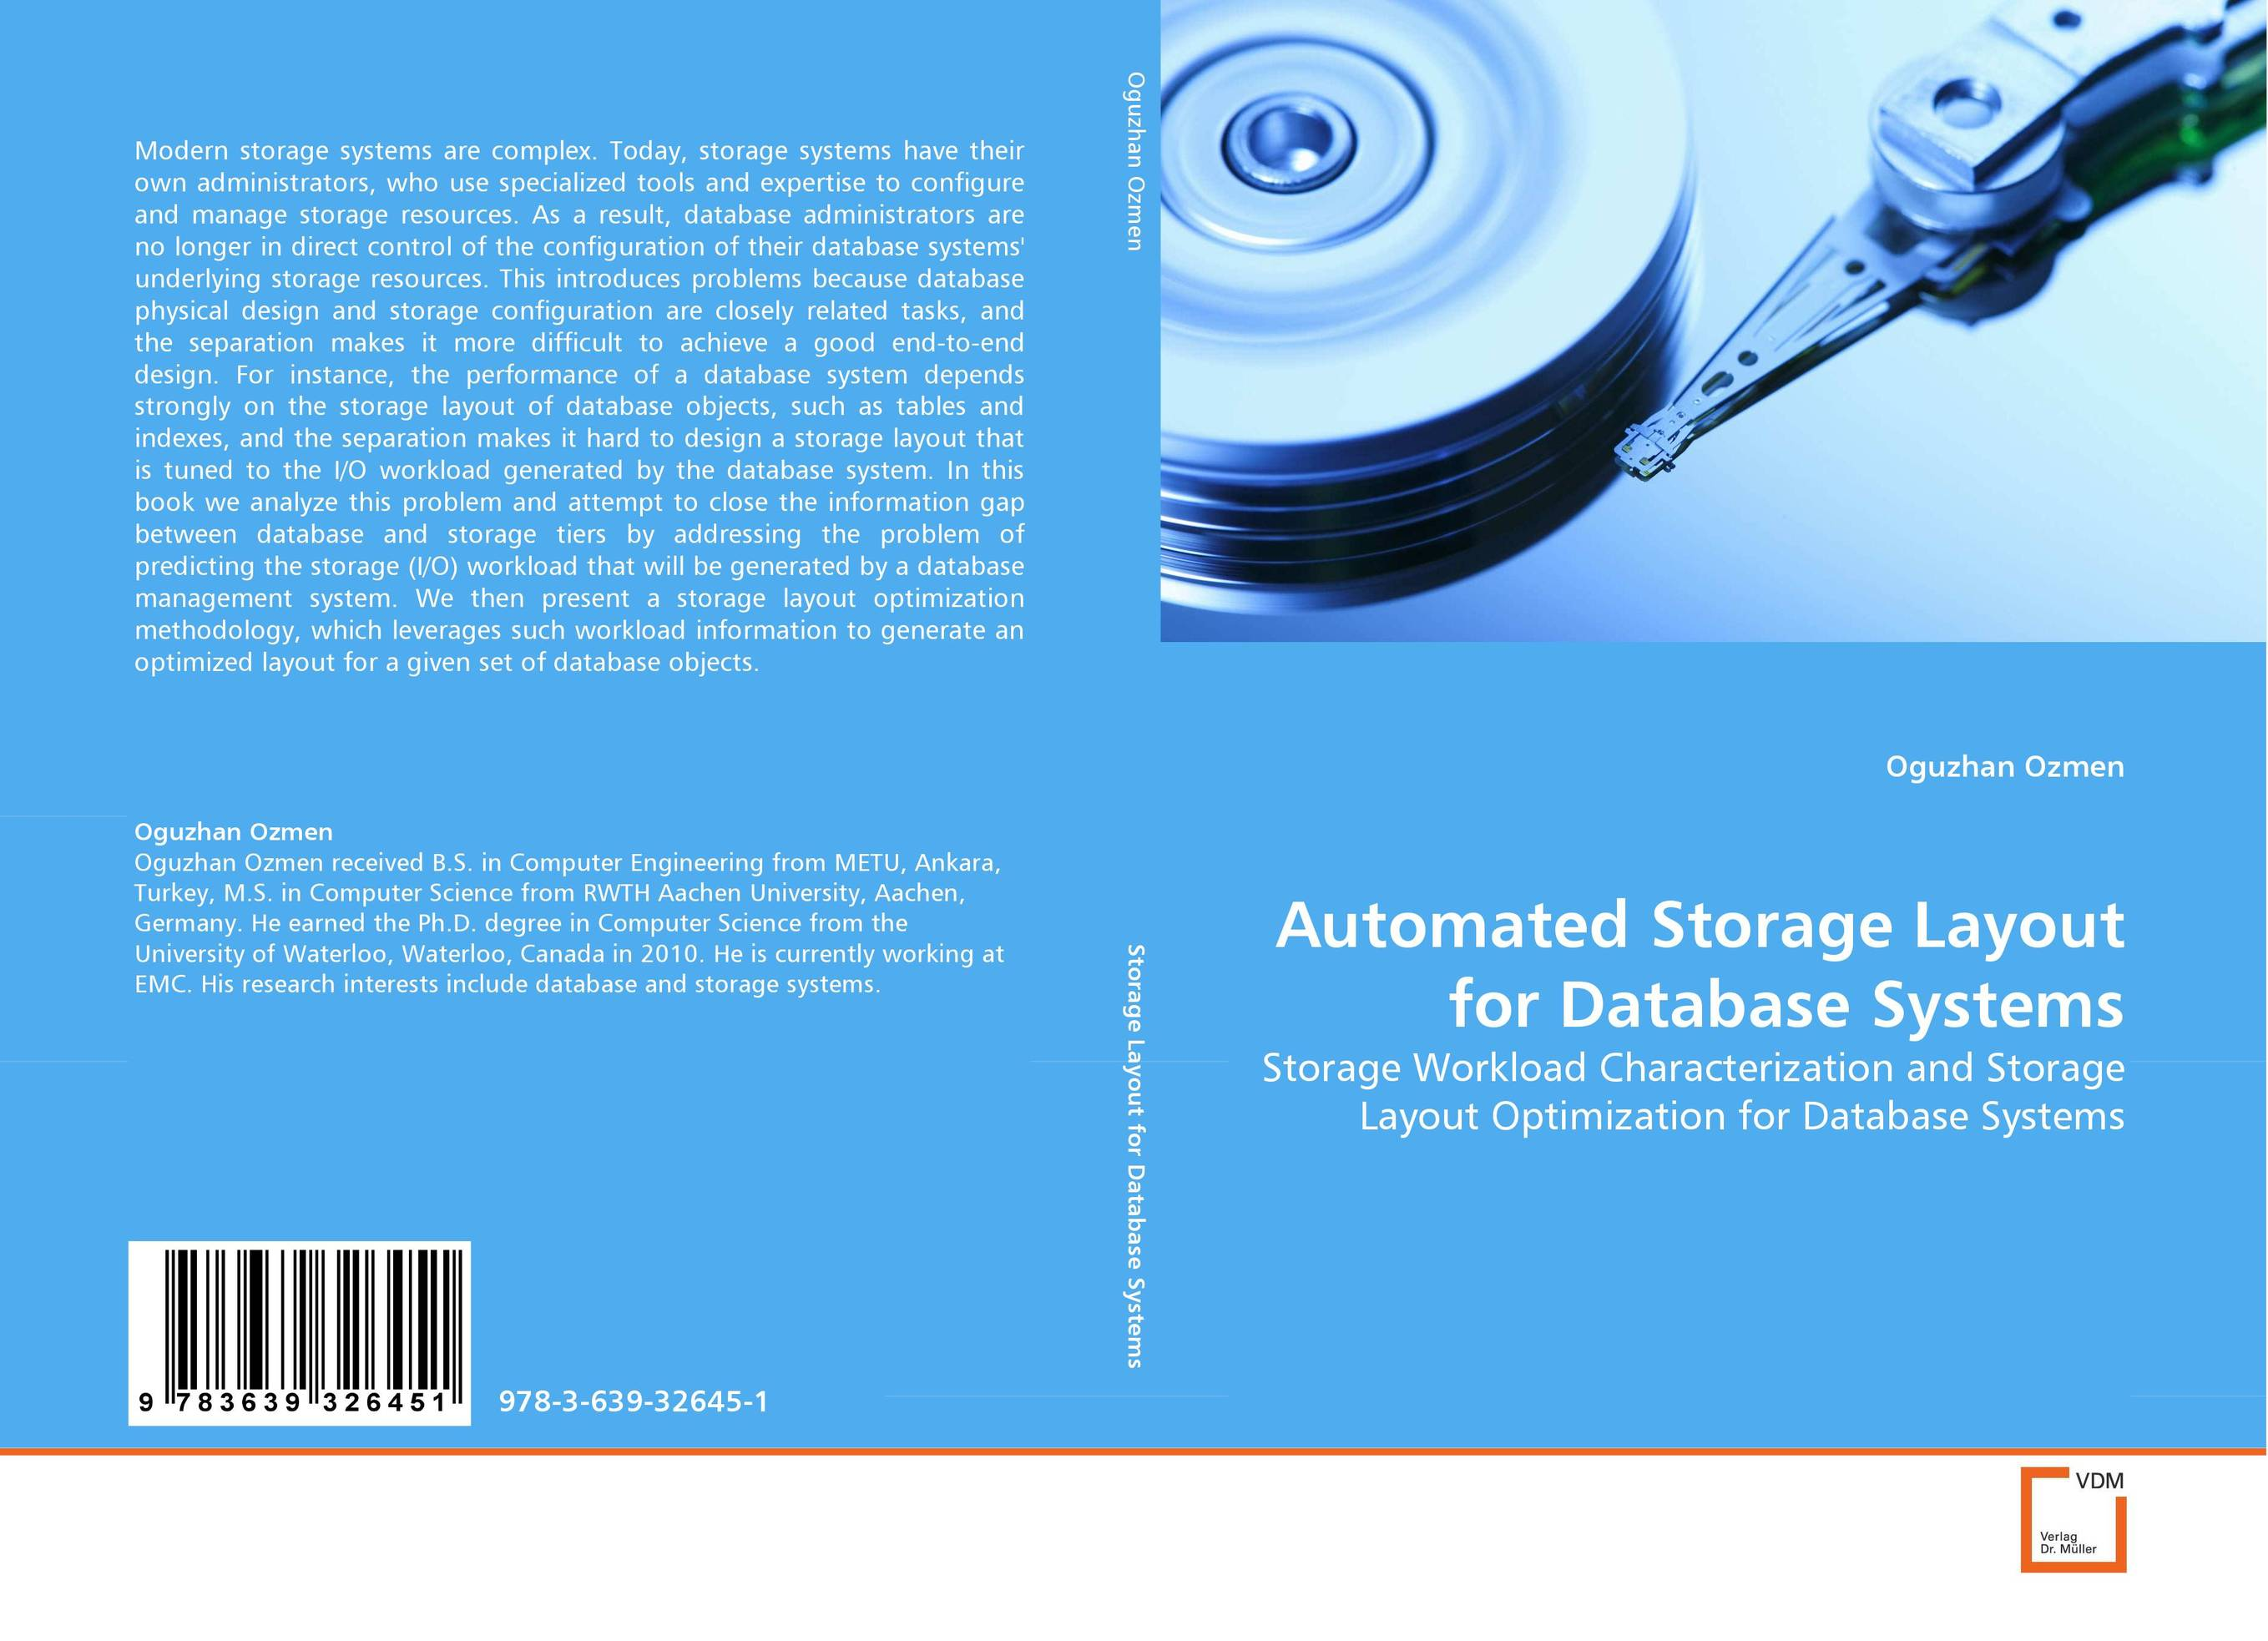 Automated Storage Layout for Database Systems